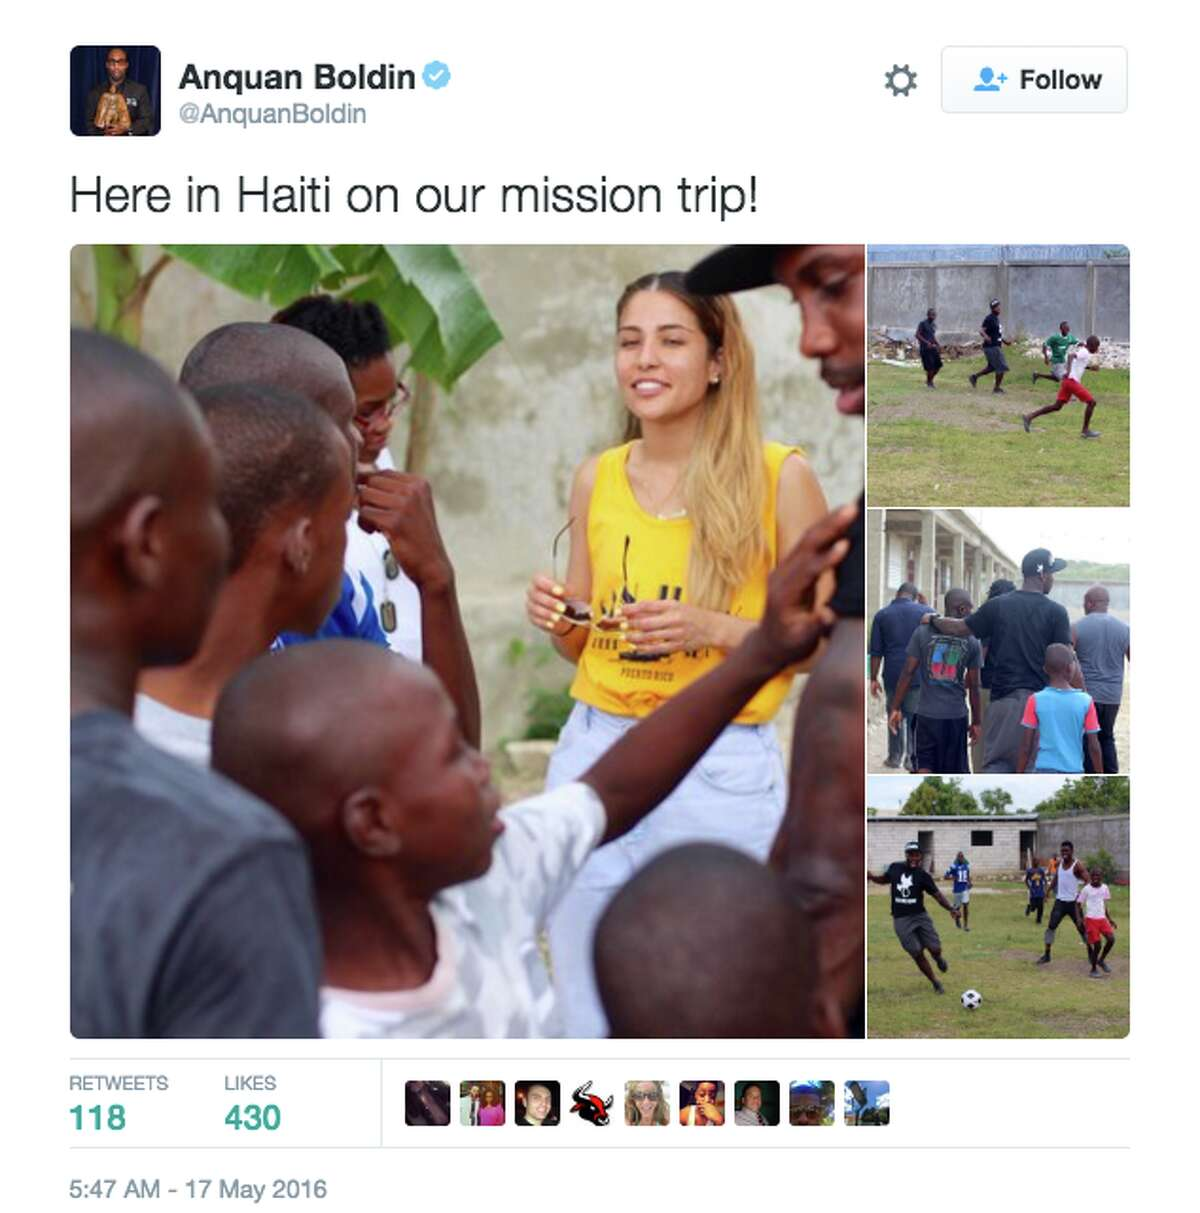 Anquan Boldin and members of his family went to Haiti on a mission trip to help underprivileged youth.